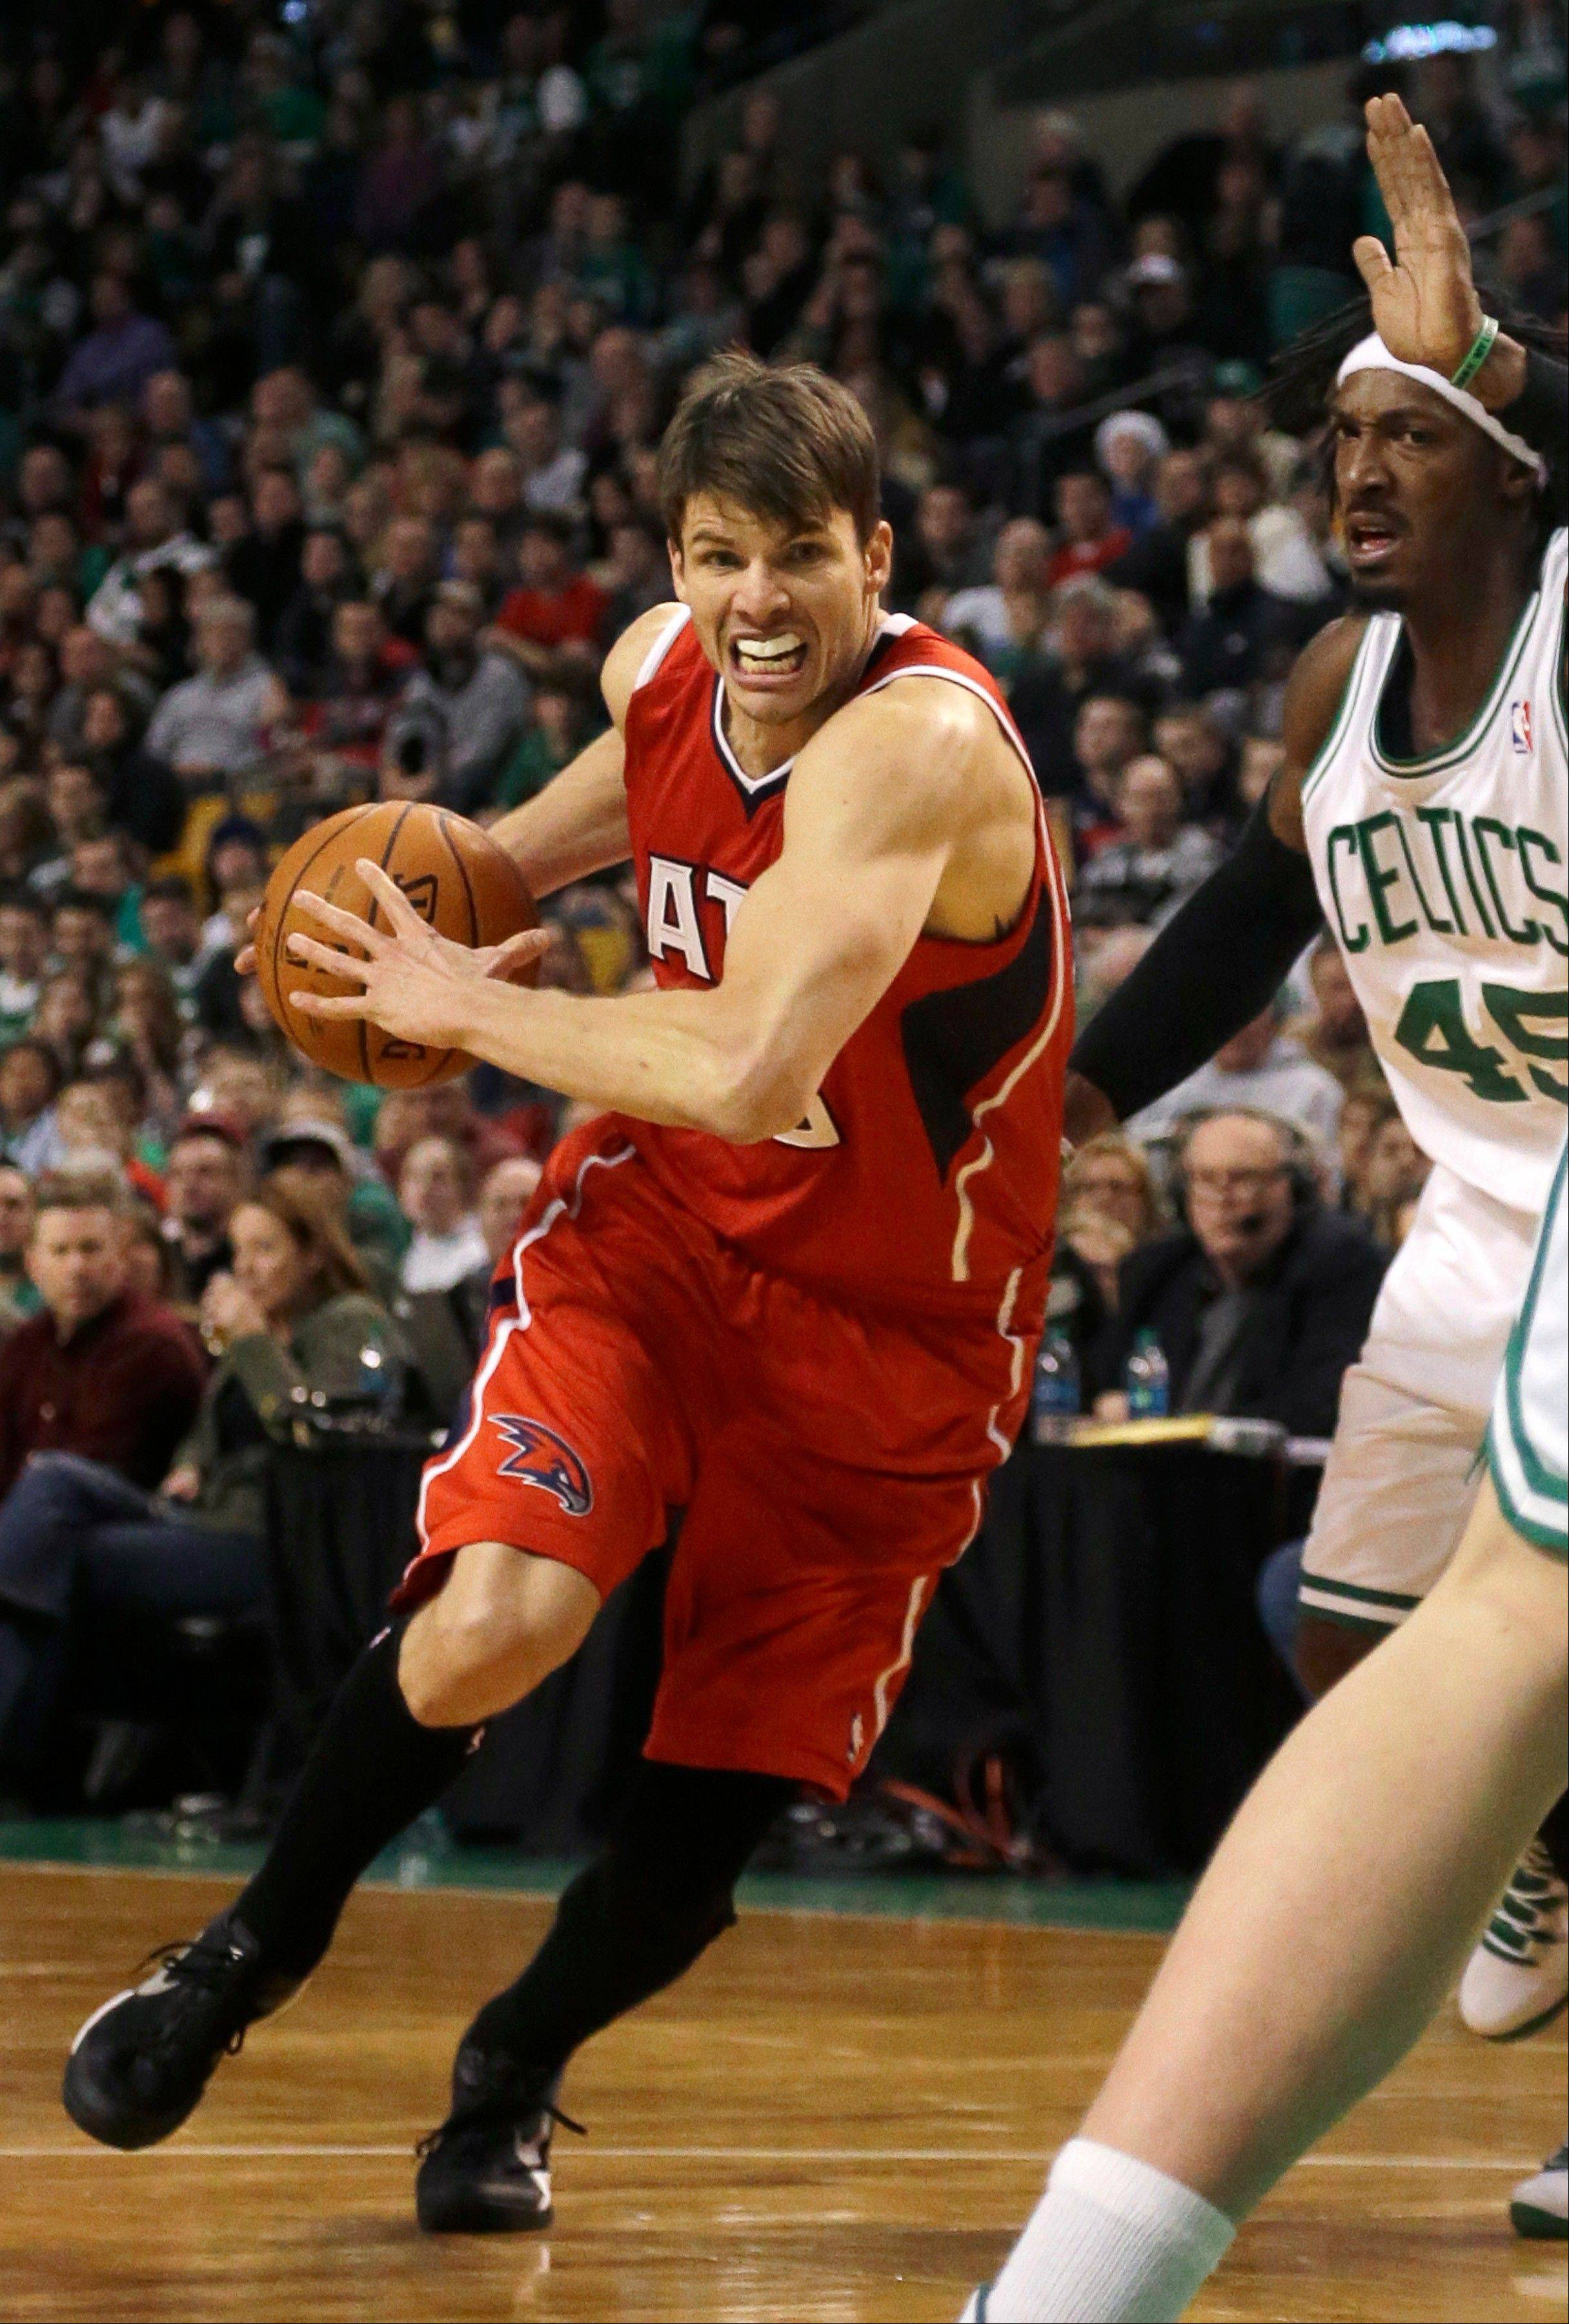 Atlanta Hawks guard Kyle Korver has the NBA record for consecutive games with a made 3-pointer, which now sits at 103 and counting.